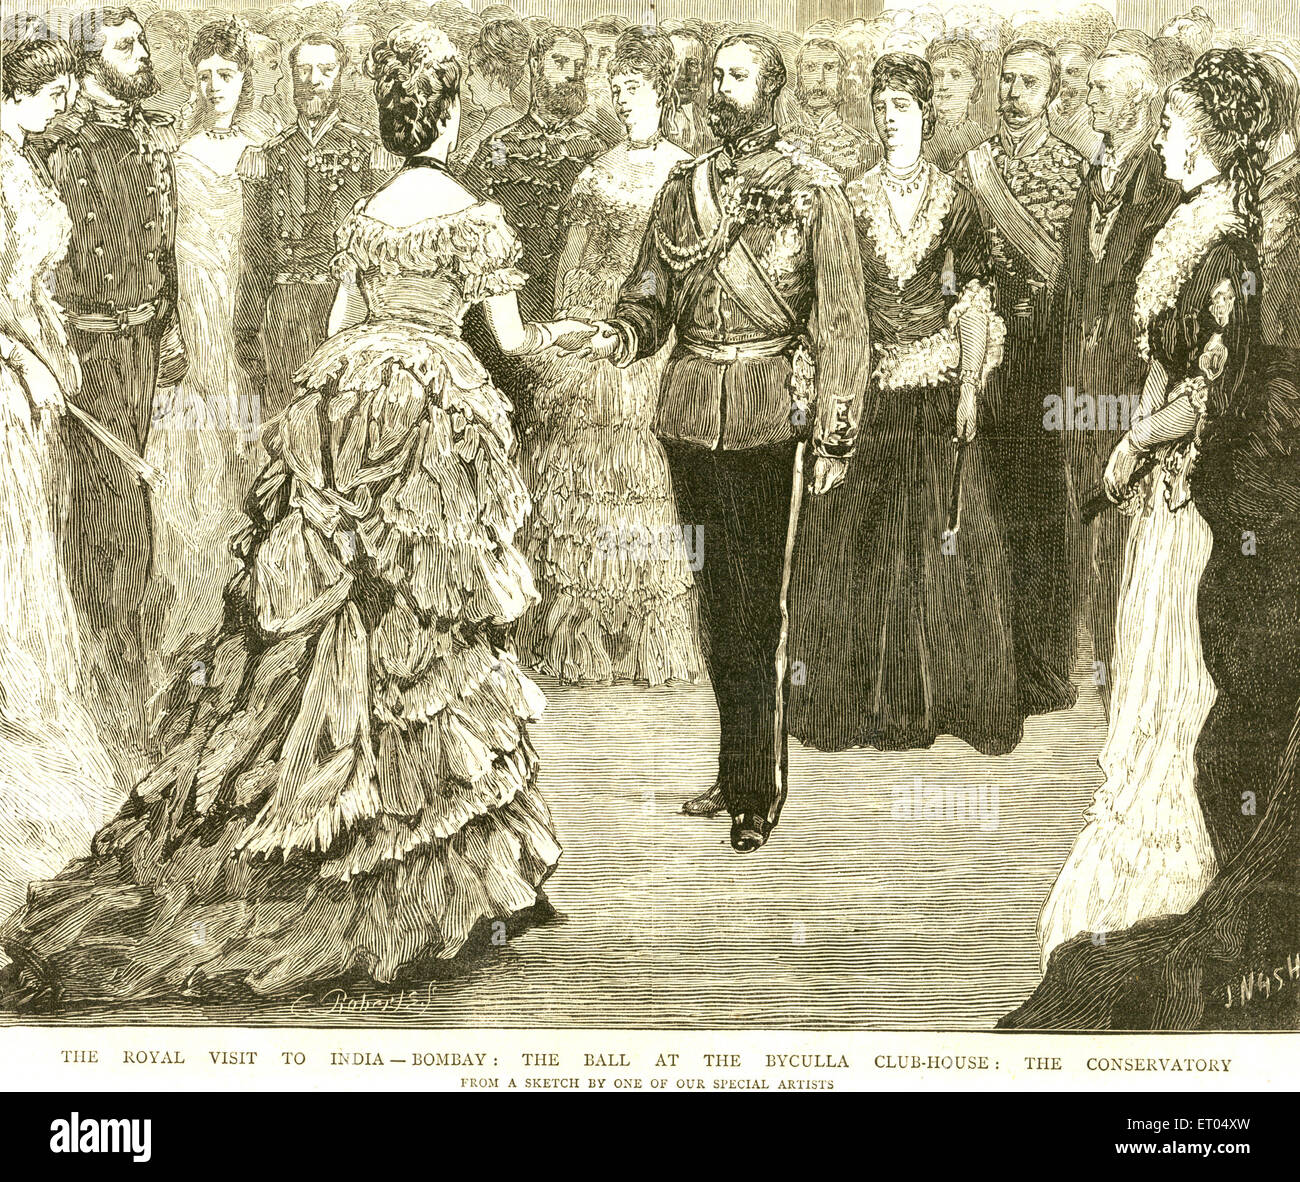 Royal visit to India ; the ball at the Byculla club ; 11th December 1875 ; Bombay now Mumbai ; Maharashtra ; India - Stock Image